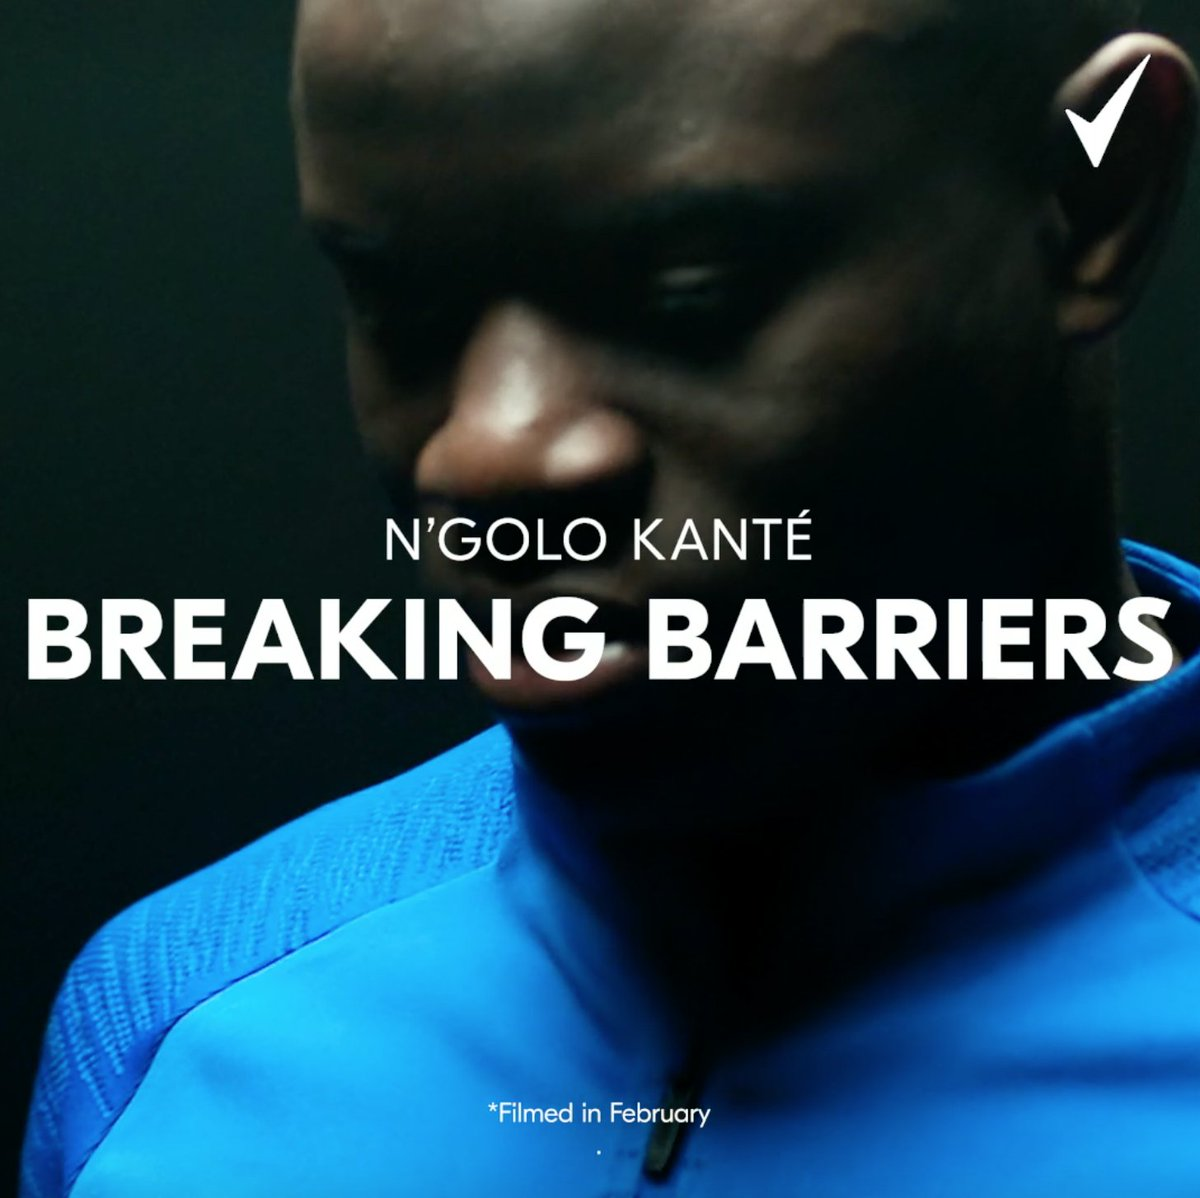 If its something you love, you should give the best of yourself. And if its not enough, find ways of being better. ✊ #BreakingBarriers, with @nglkante #Rexona